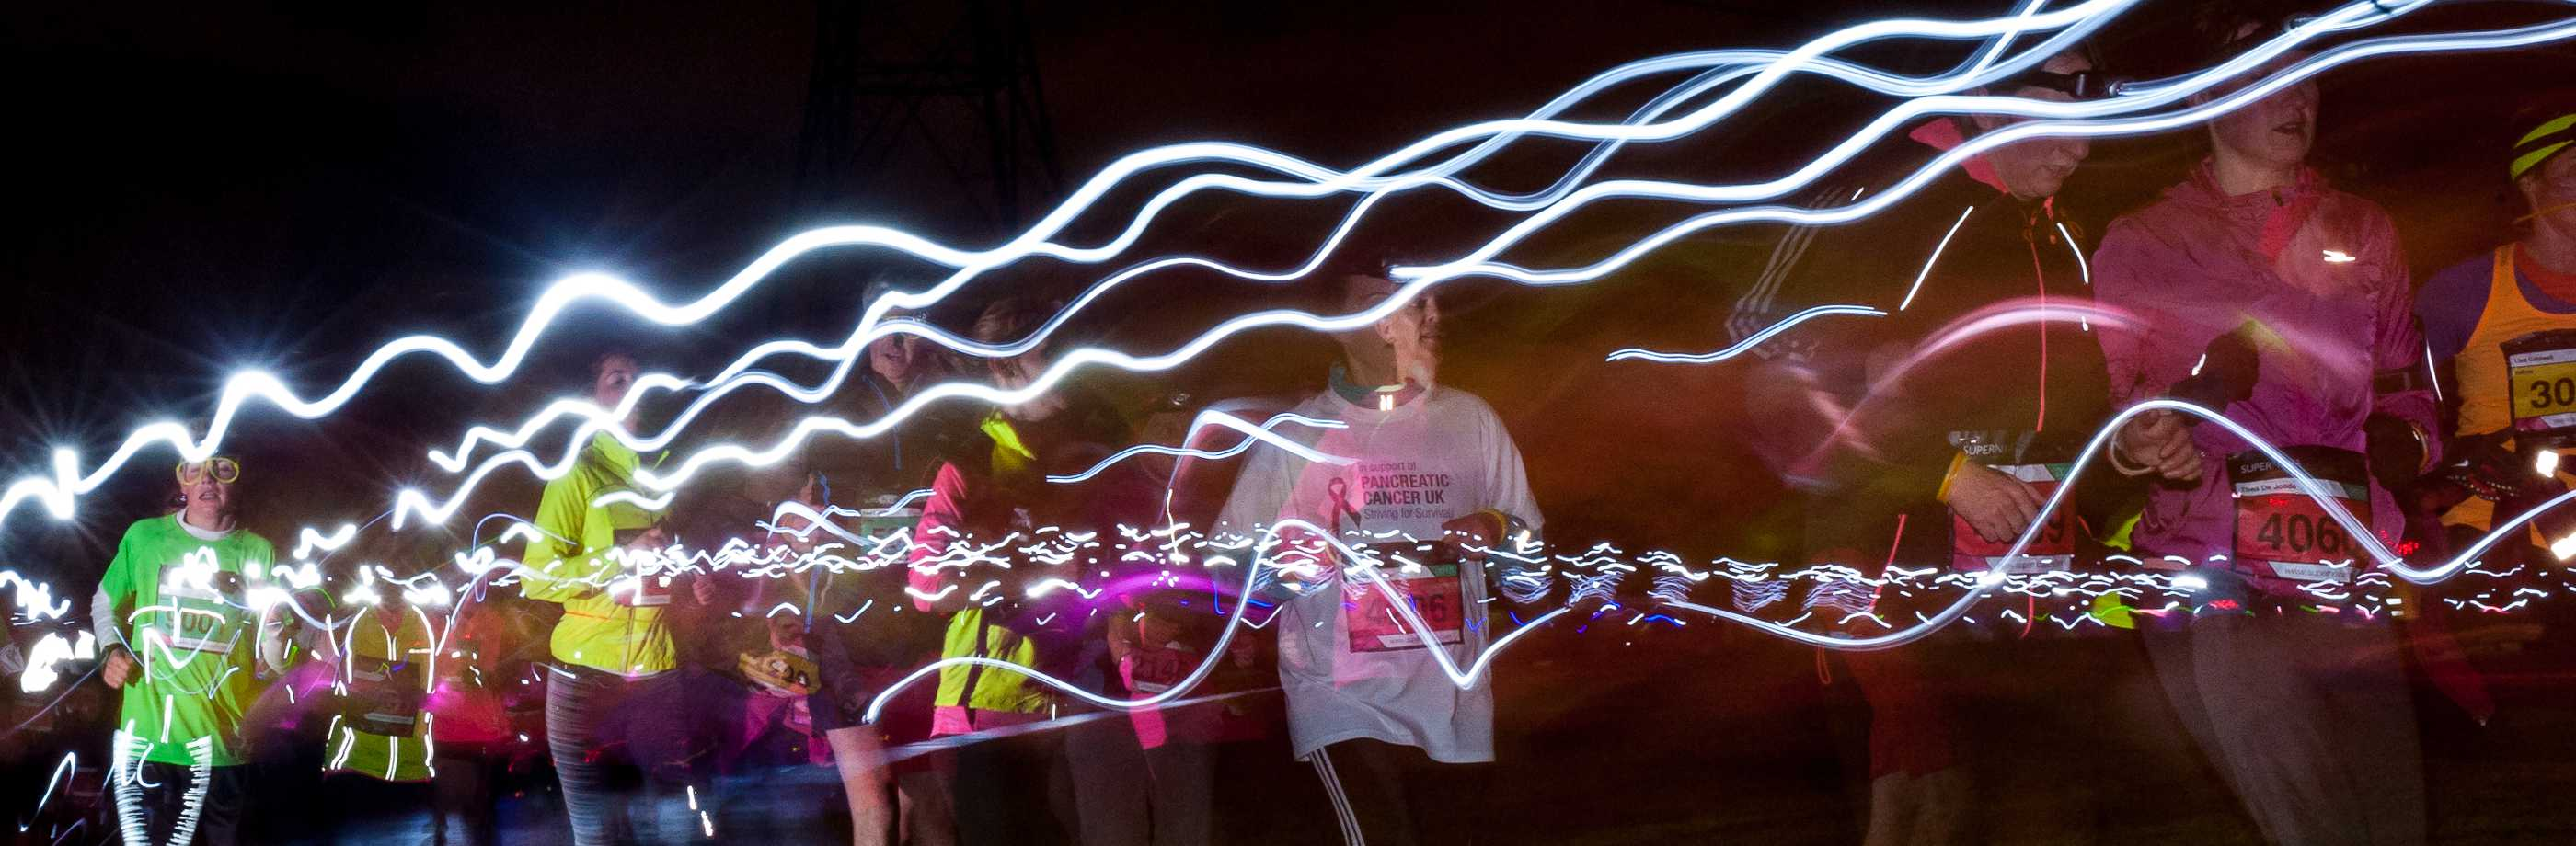 Ghostly runners in the night with light trails above them